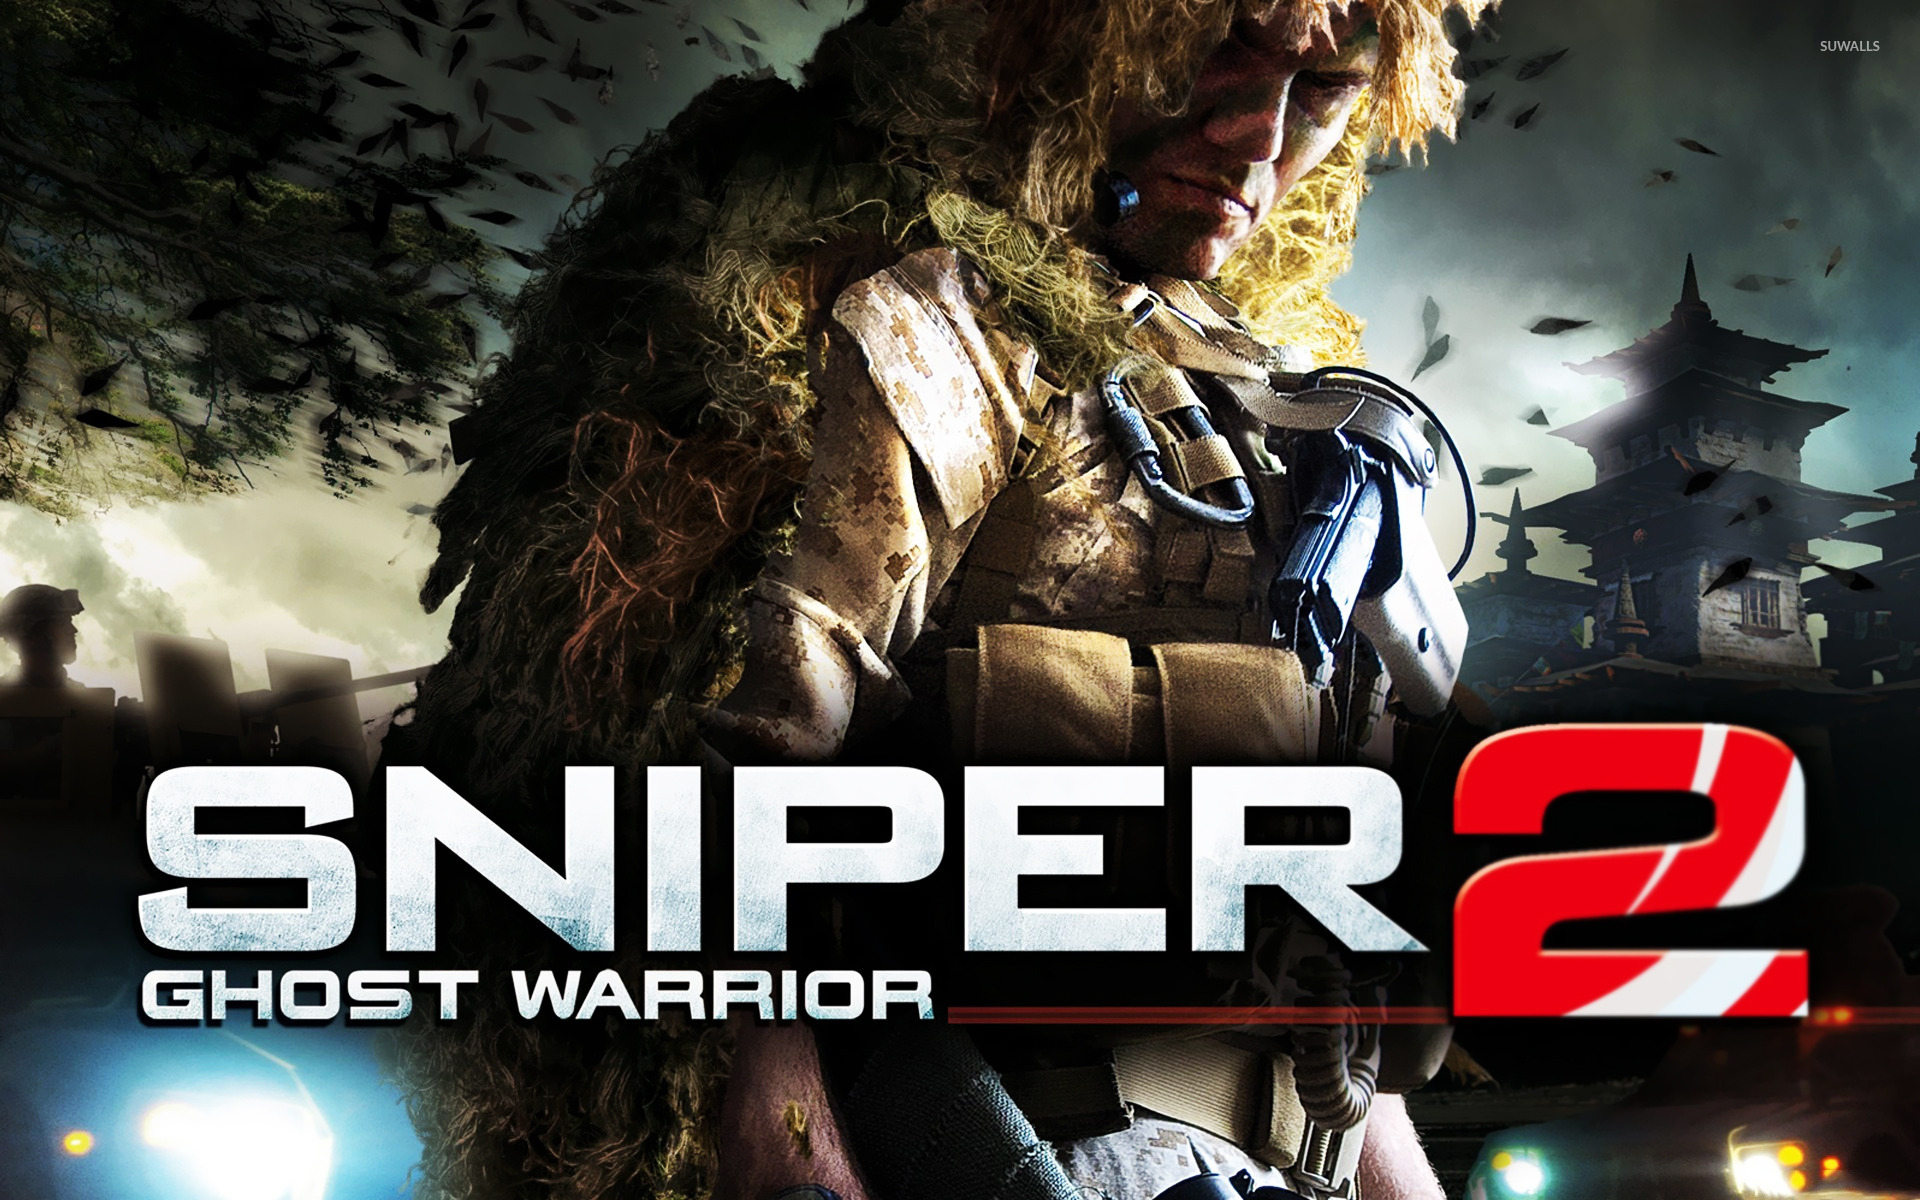 sniper: ghost warrior 2 [2] wallpaper - game wallpapers - #16052